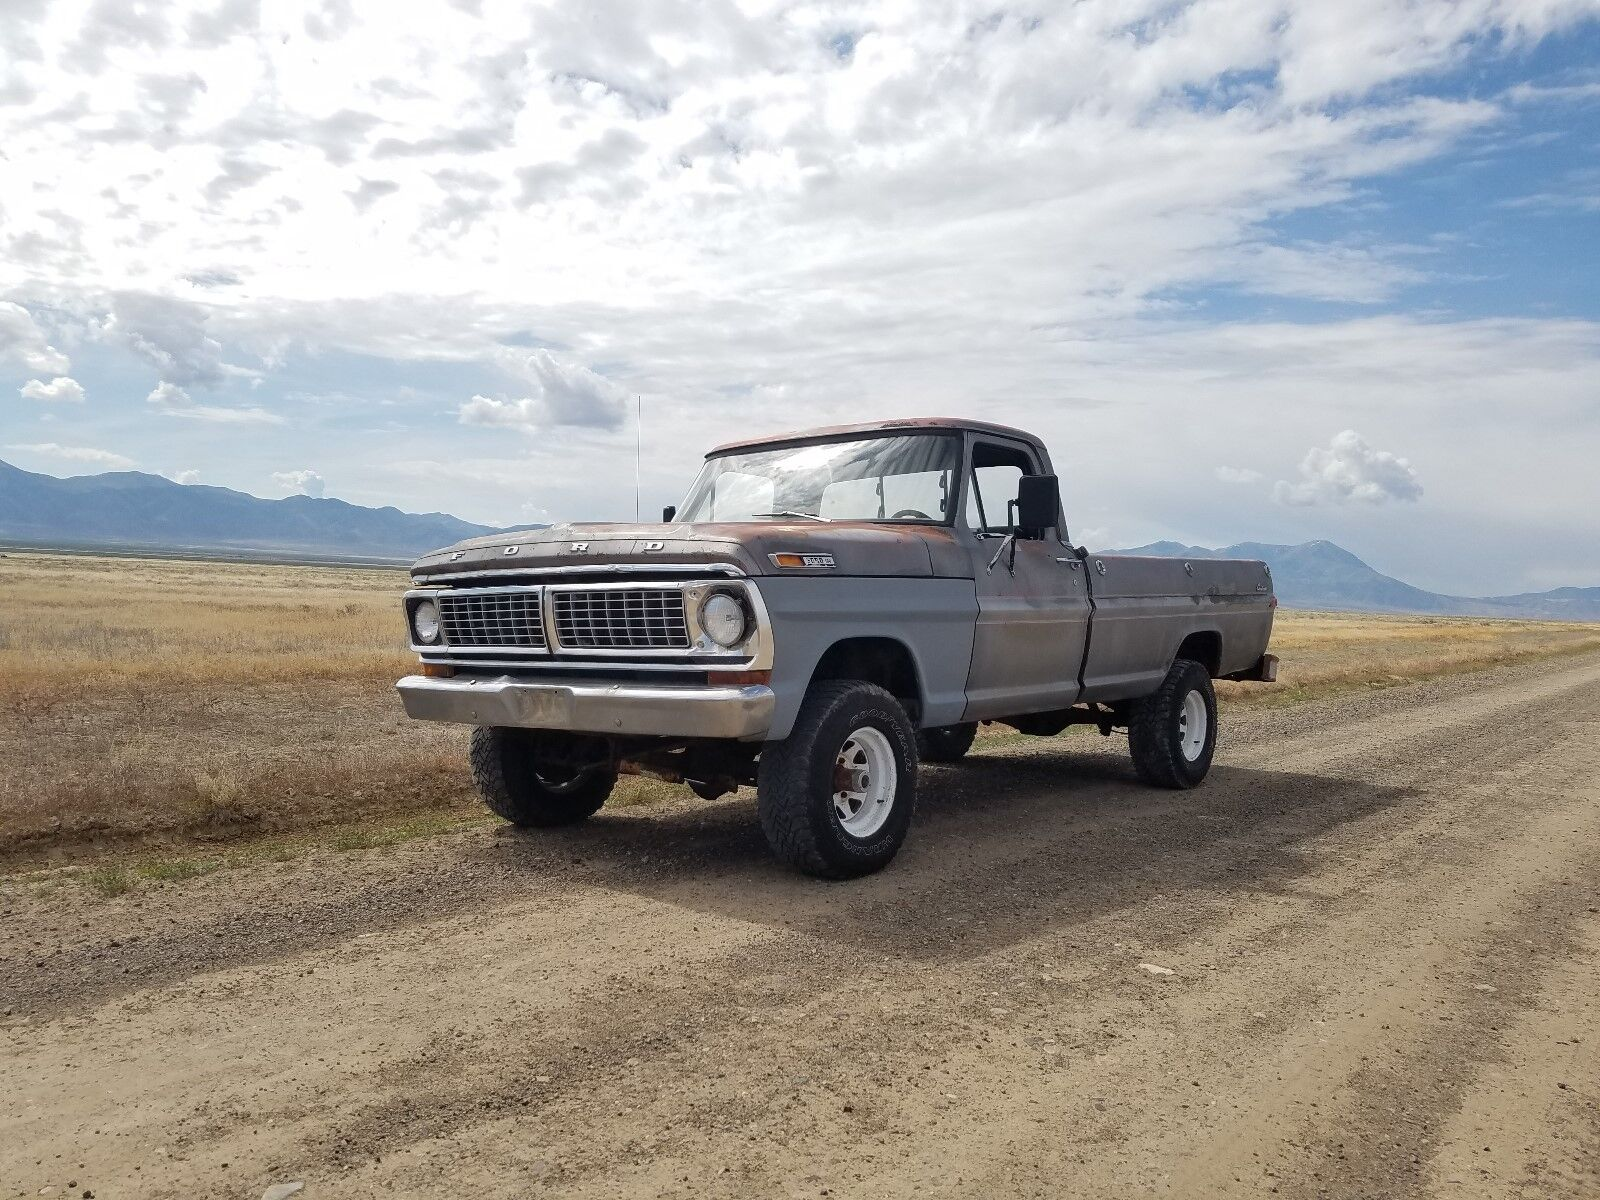 1970 Ford F-100 custom 1970 Ford F100 4WD 460 4x4 4 speed manual long bed lifted